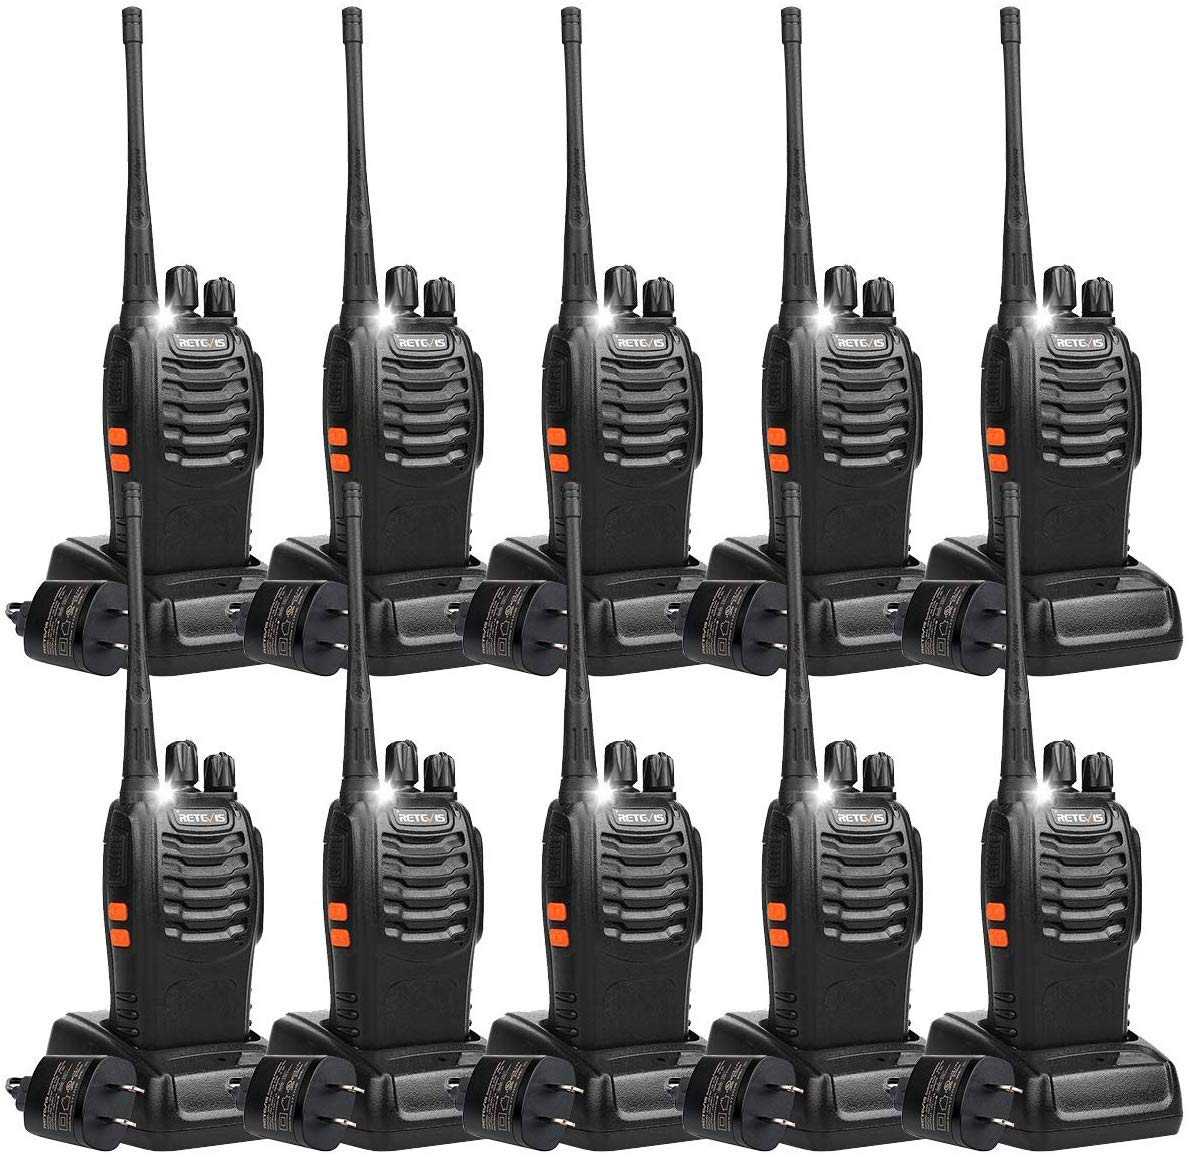 Retevis H-777 2 Way Radios Walkie Talkie